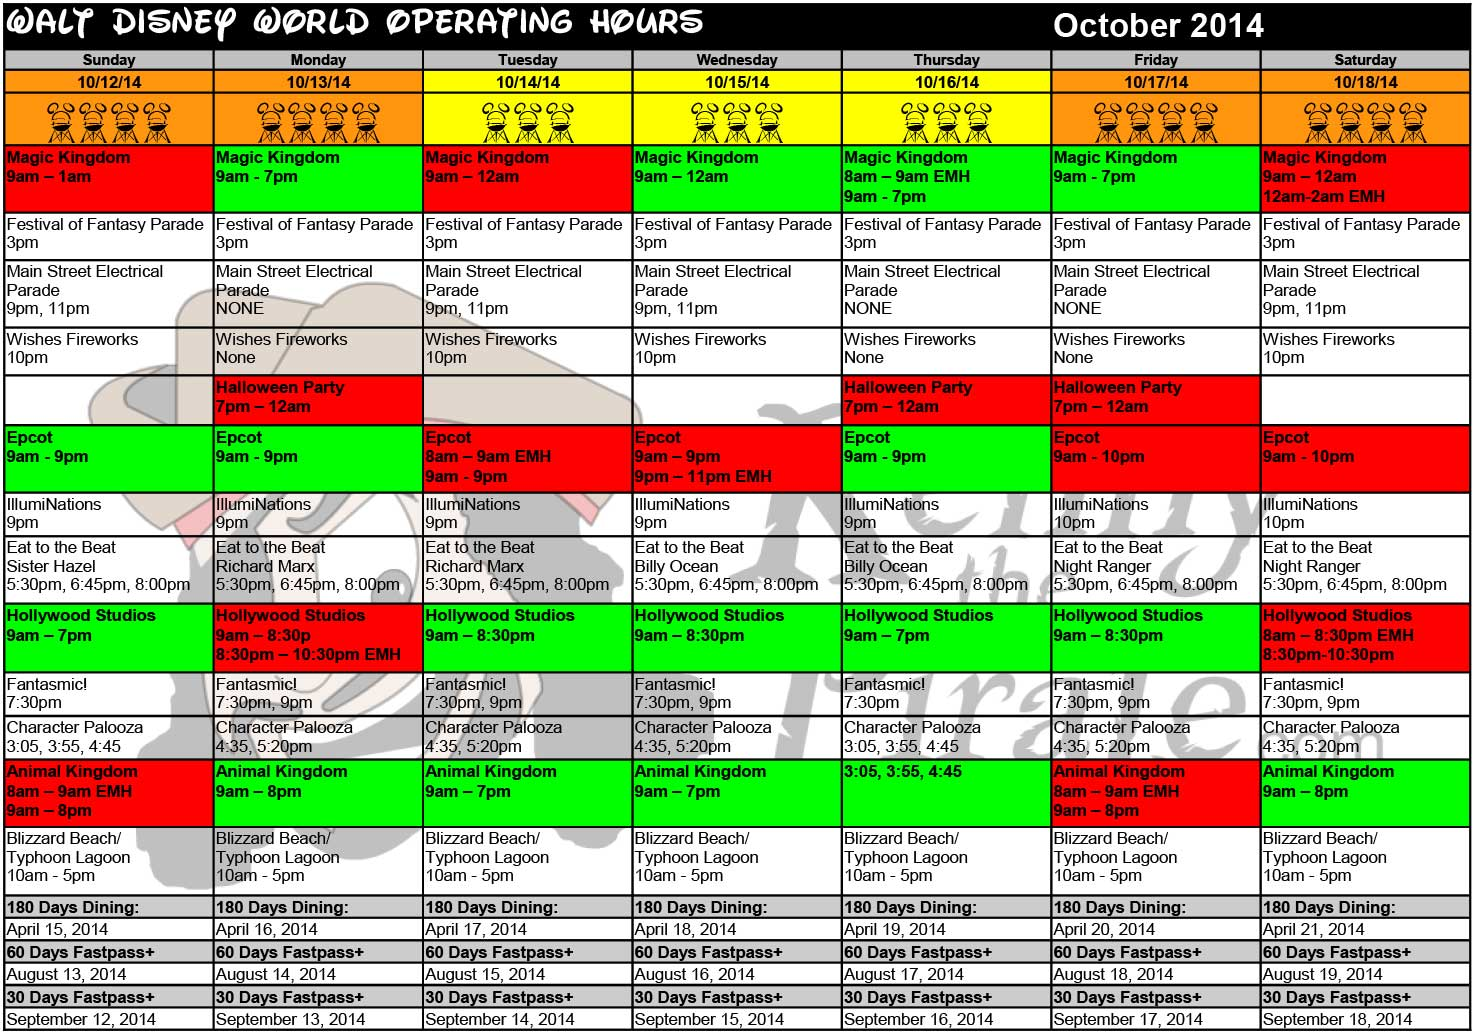 October 2014 Disney World Crowd Calendar Park Hours KennythePirate